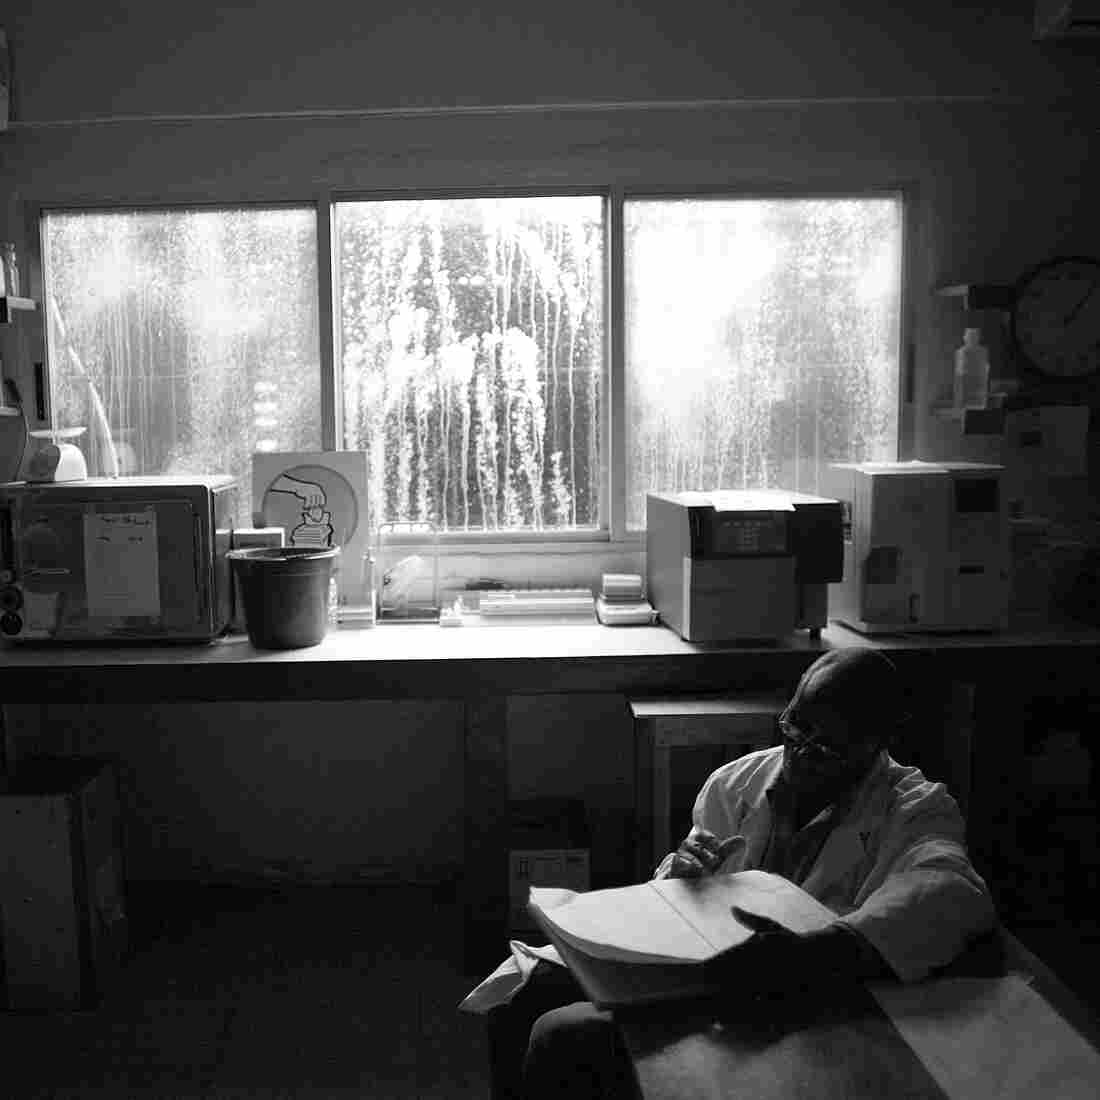 Light shines through the chlorine-stained windows in the blood-testing area at Redemption Hospital in New Kru Town, Monrovia, Liberia.